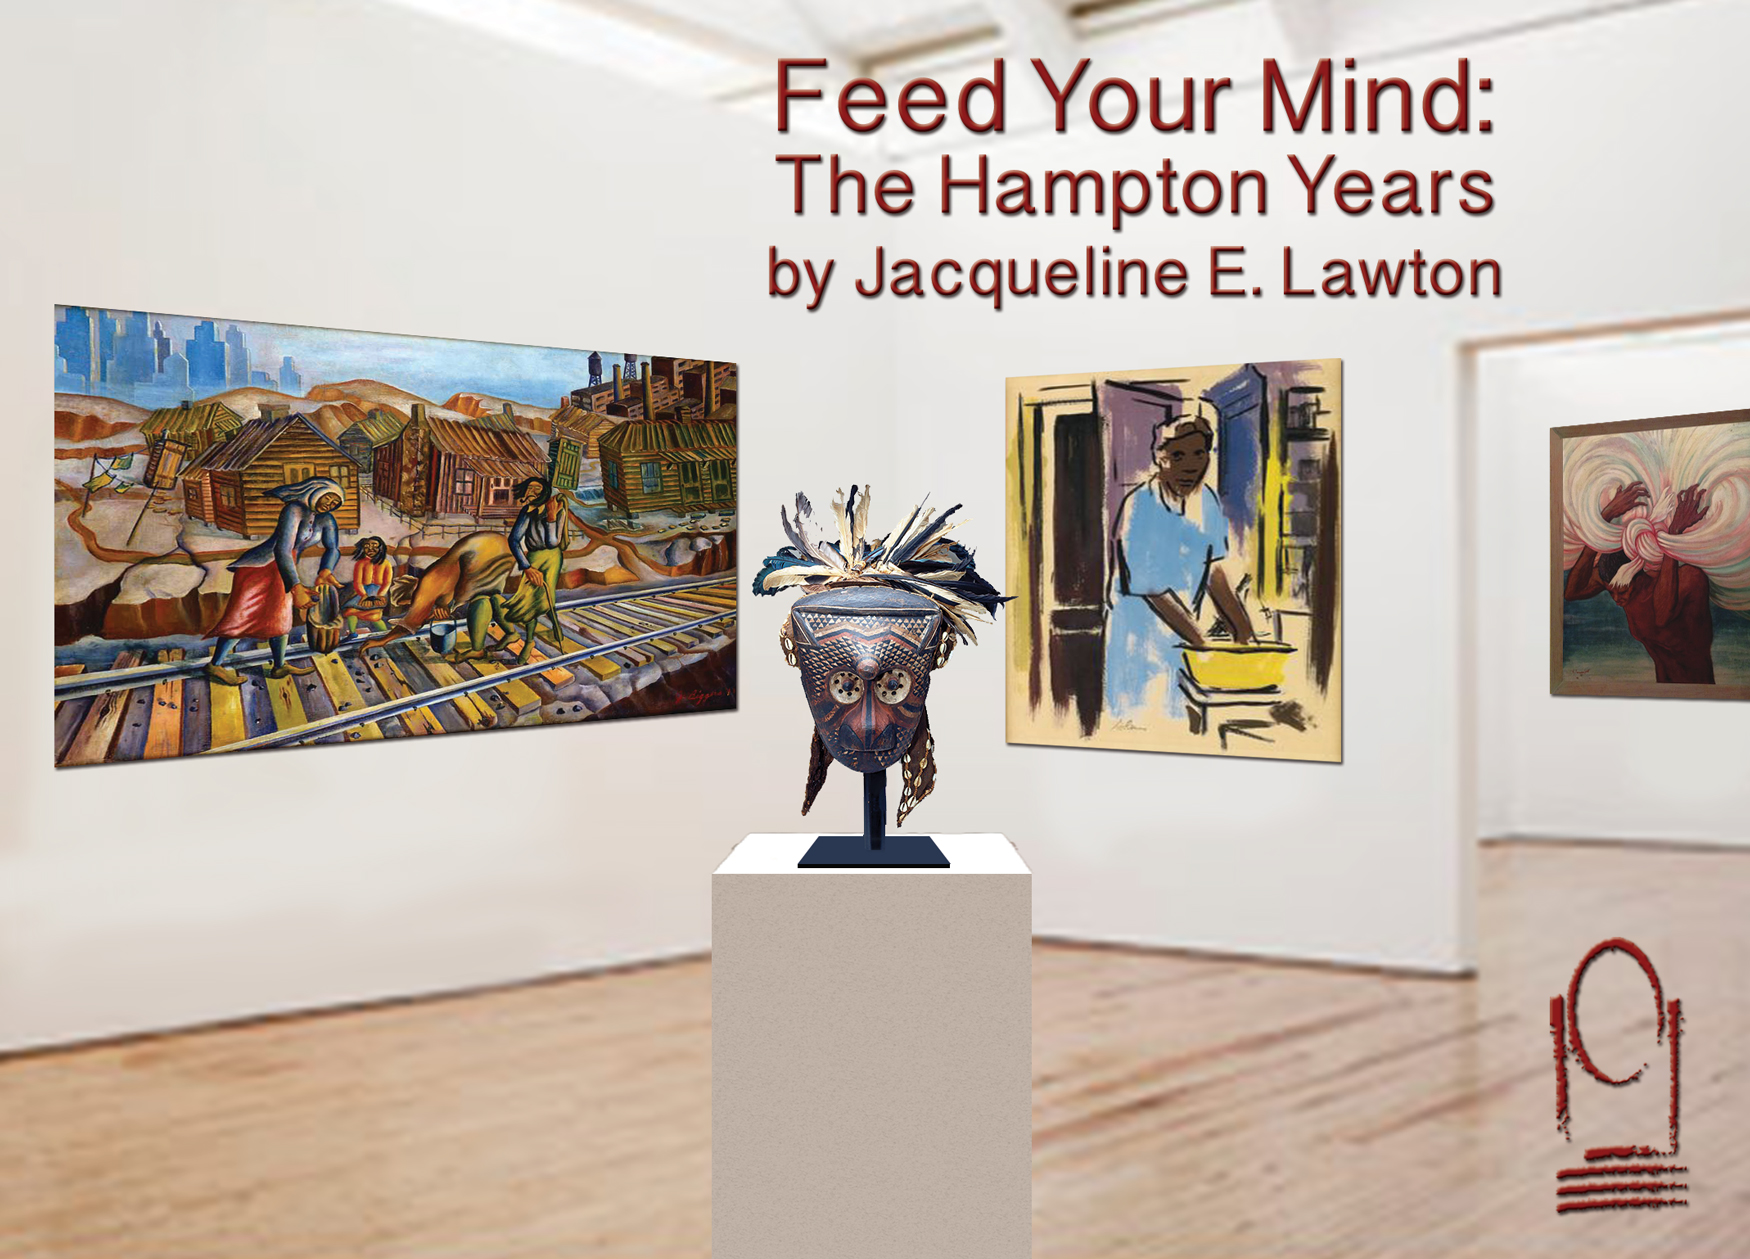 Feed Your Mind: THE HAMPTON YEARS by Jacqueline E. Lawton